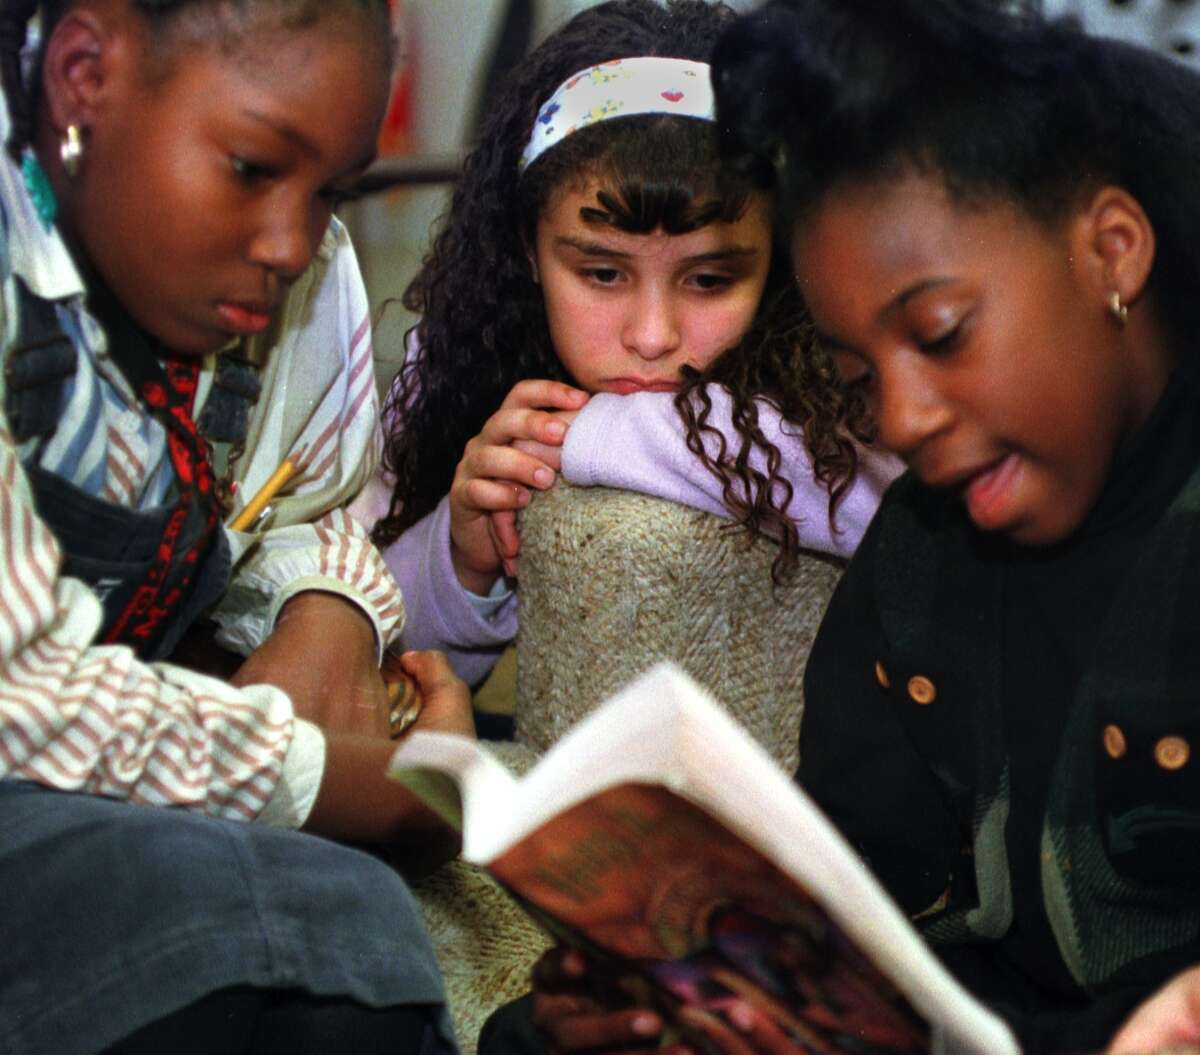 Melissa Harris, 9, reads from a Harry Potter book while Chelcy Moore, 9, left, and Isaura Torres, 10, listen during a Harry Potter discussion group at the Albany Girls Club on Monday November 15, 1999. (Times Union Staff Photo by Philip Kamrass)